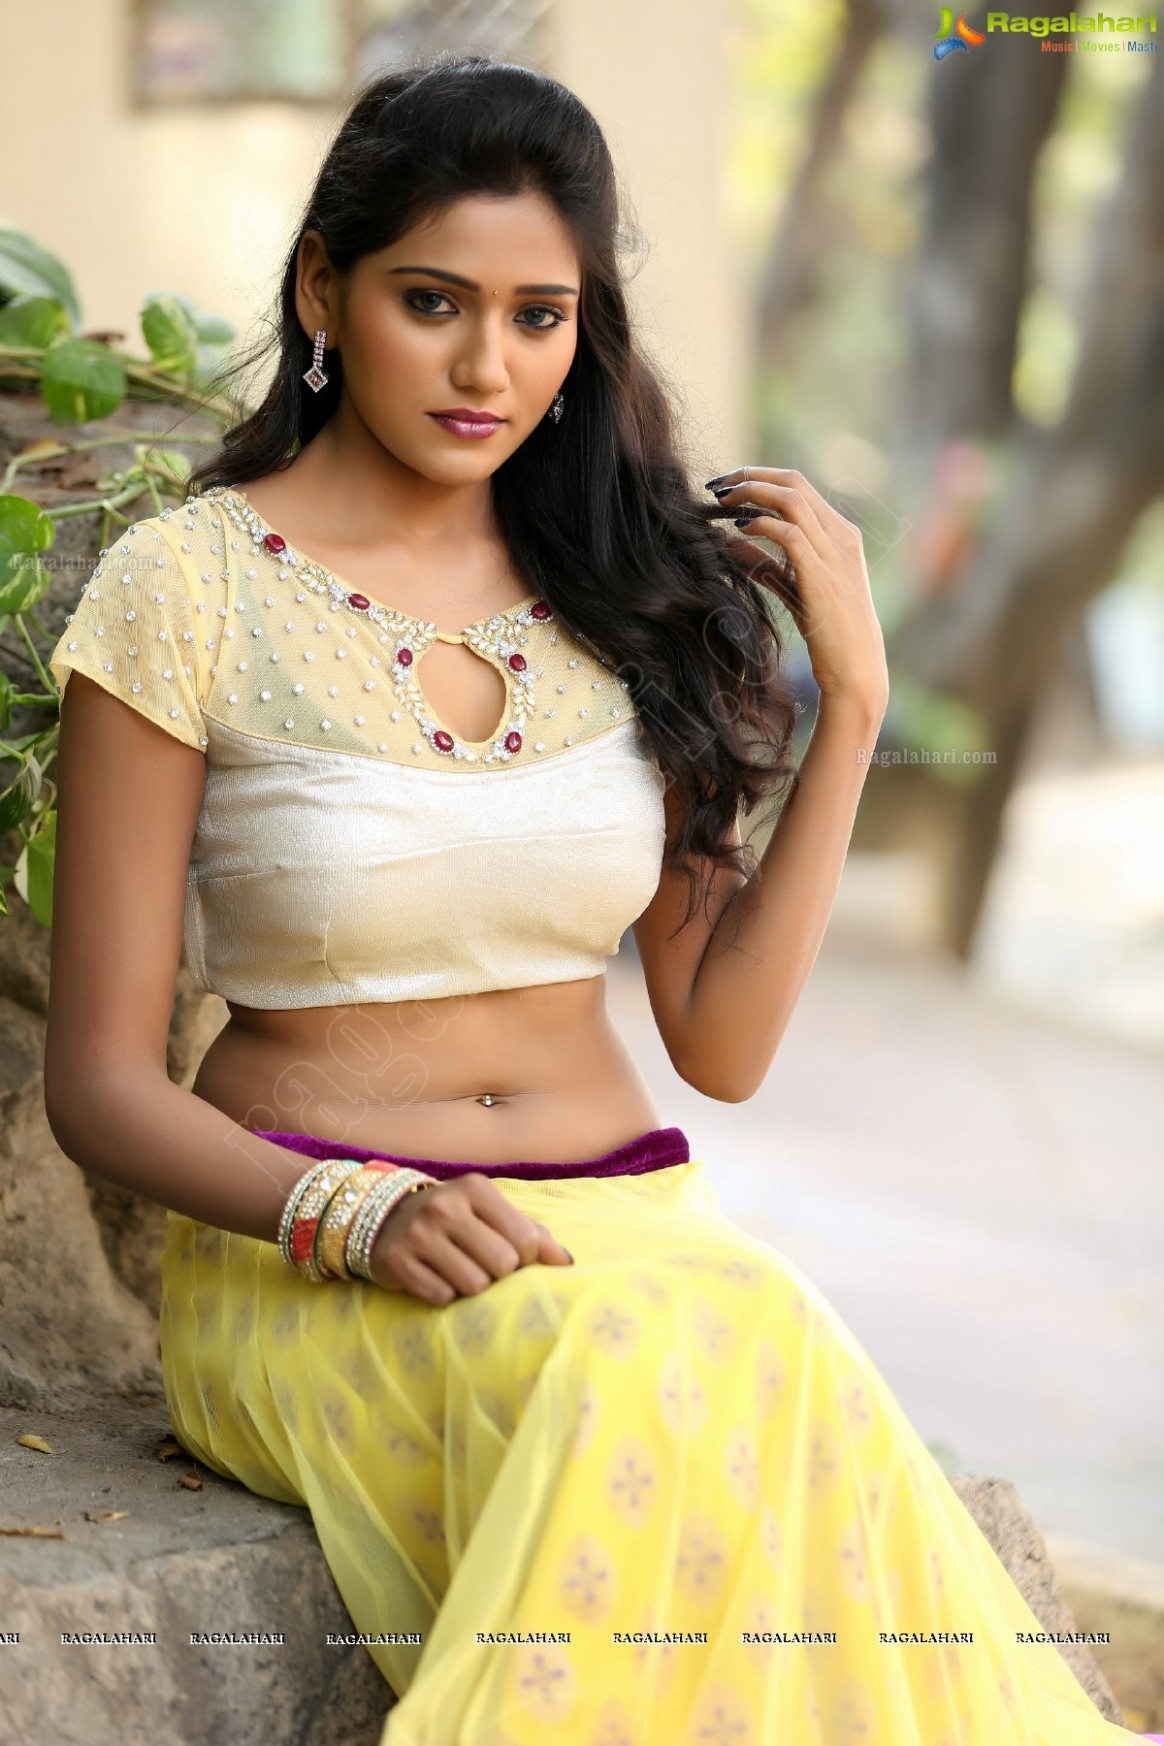 Shalu Chourasiya (Exclusive) Image 30 | Telugu Actress ...